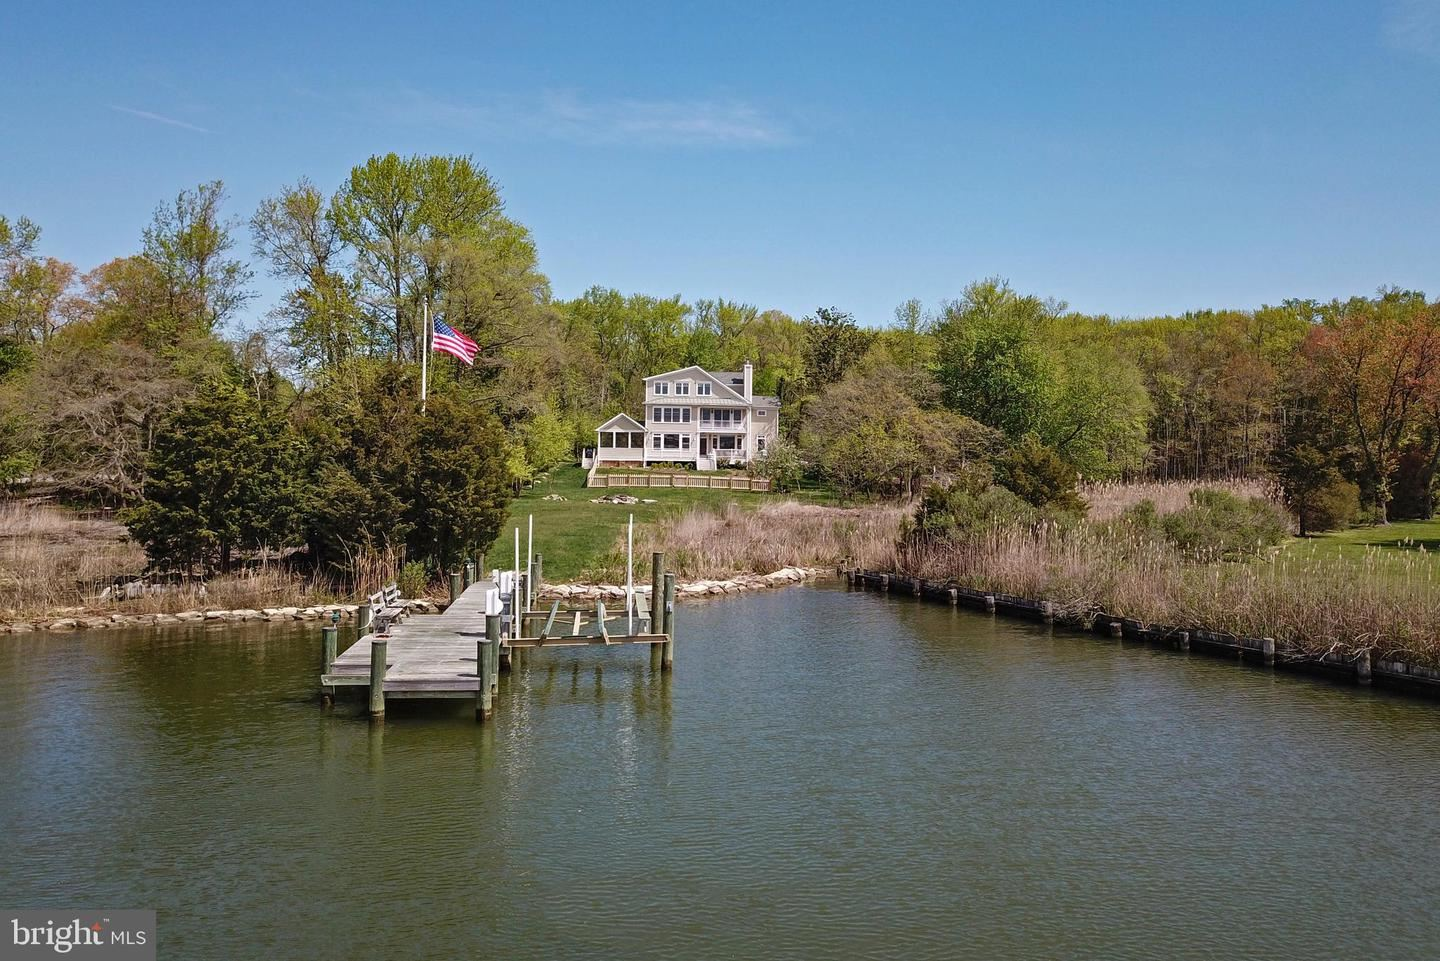 3154 ARUNDEL ON THE BAY RD, Annapolis, MD 21403 - MLS#: MDAA450230